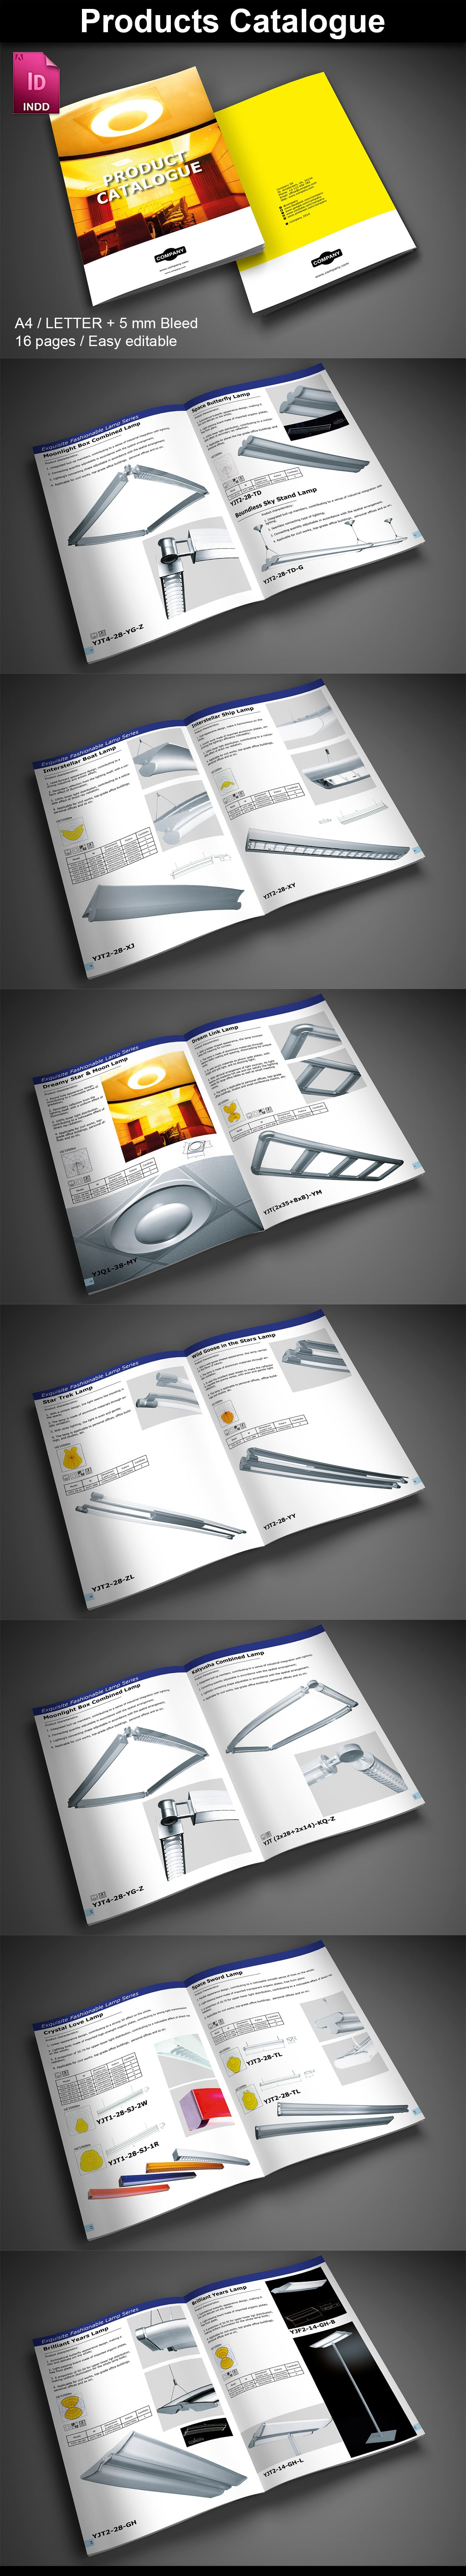 15  InDesign Product Catalogs - just $19 - 05 Products5 ImagePreview